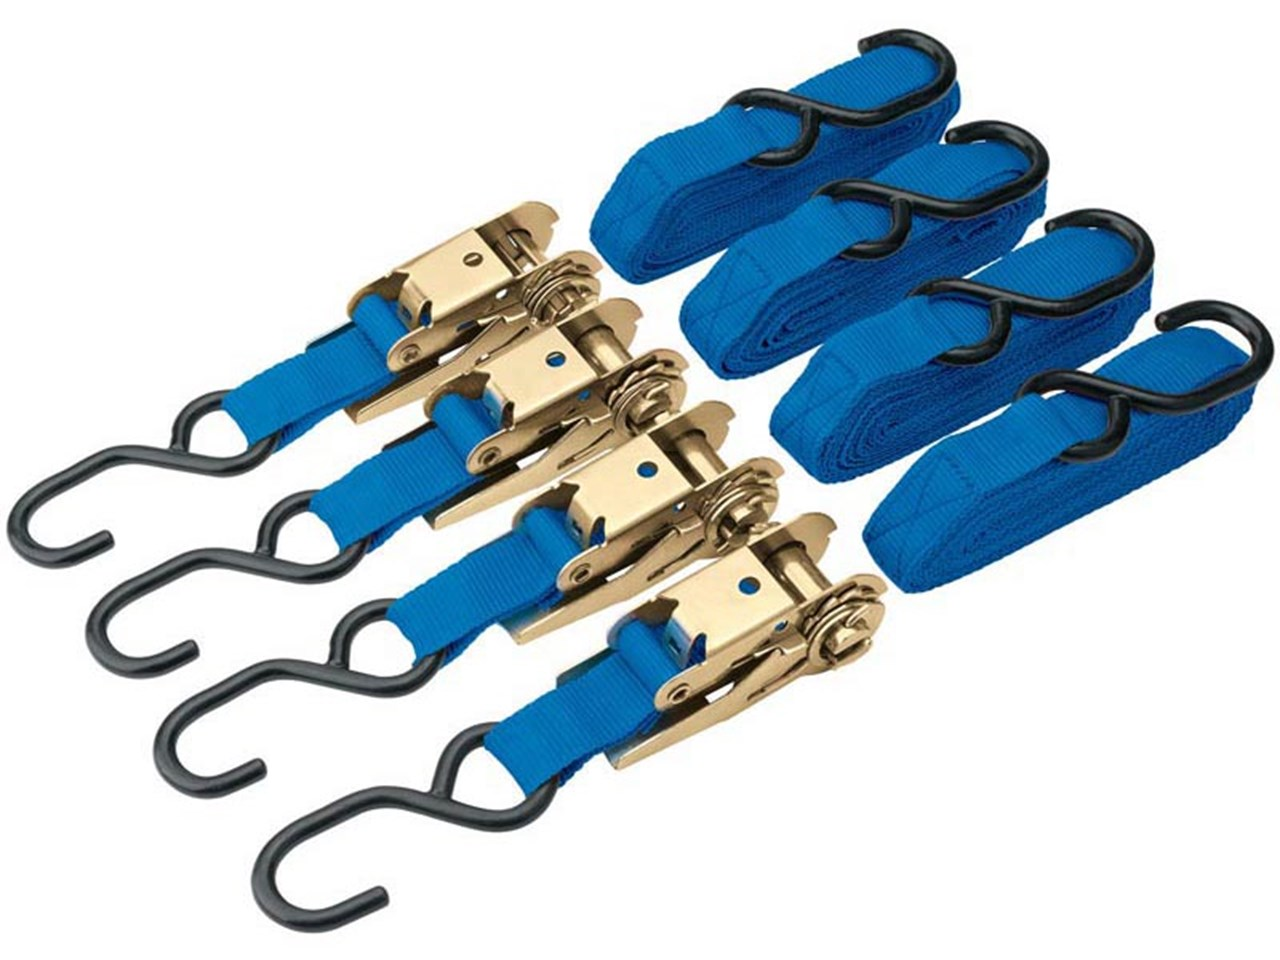 375kg Ratcheting Tie Down Strap Set (4 Piece) – Now Only £12.00